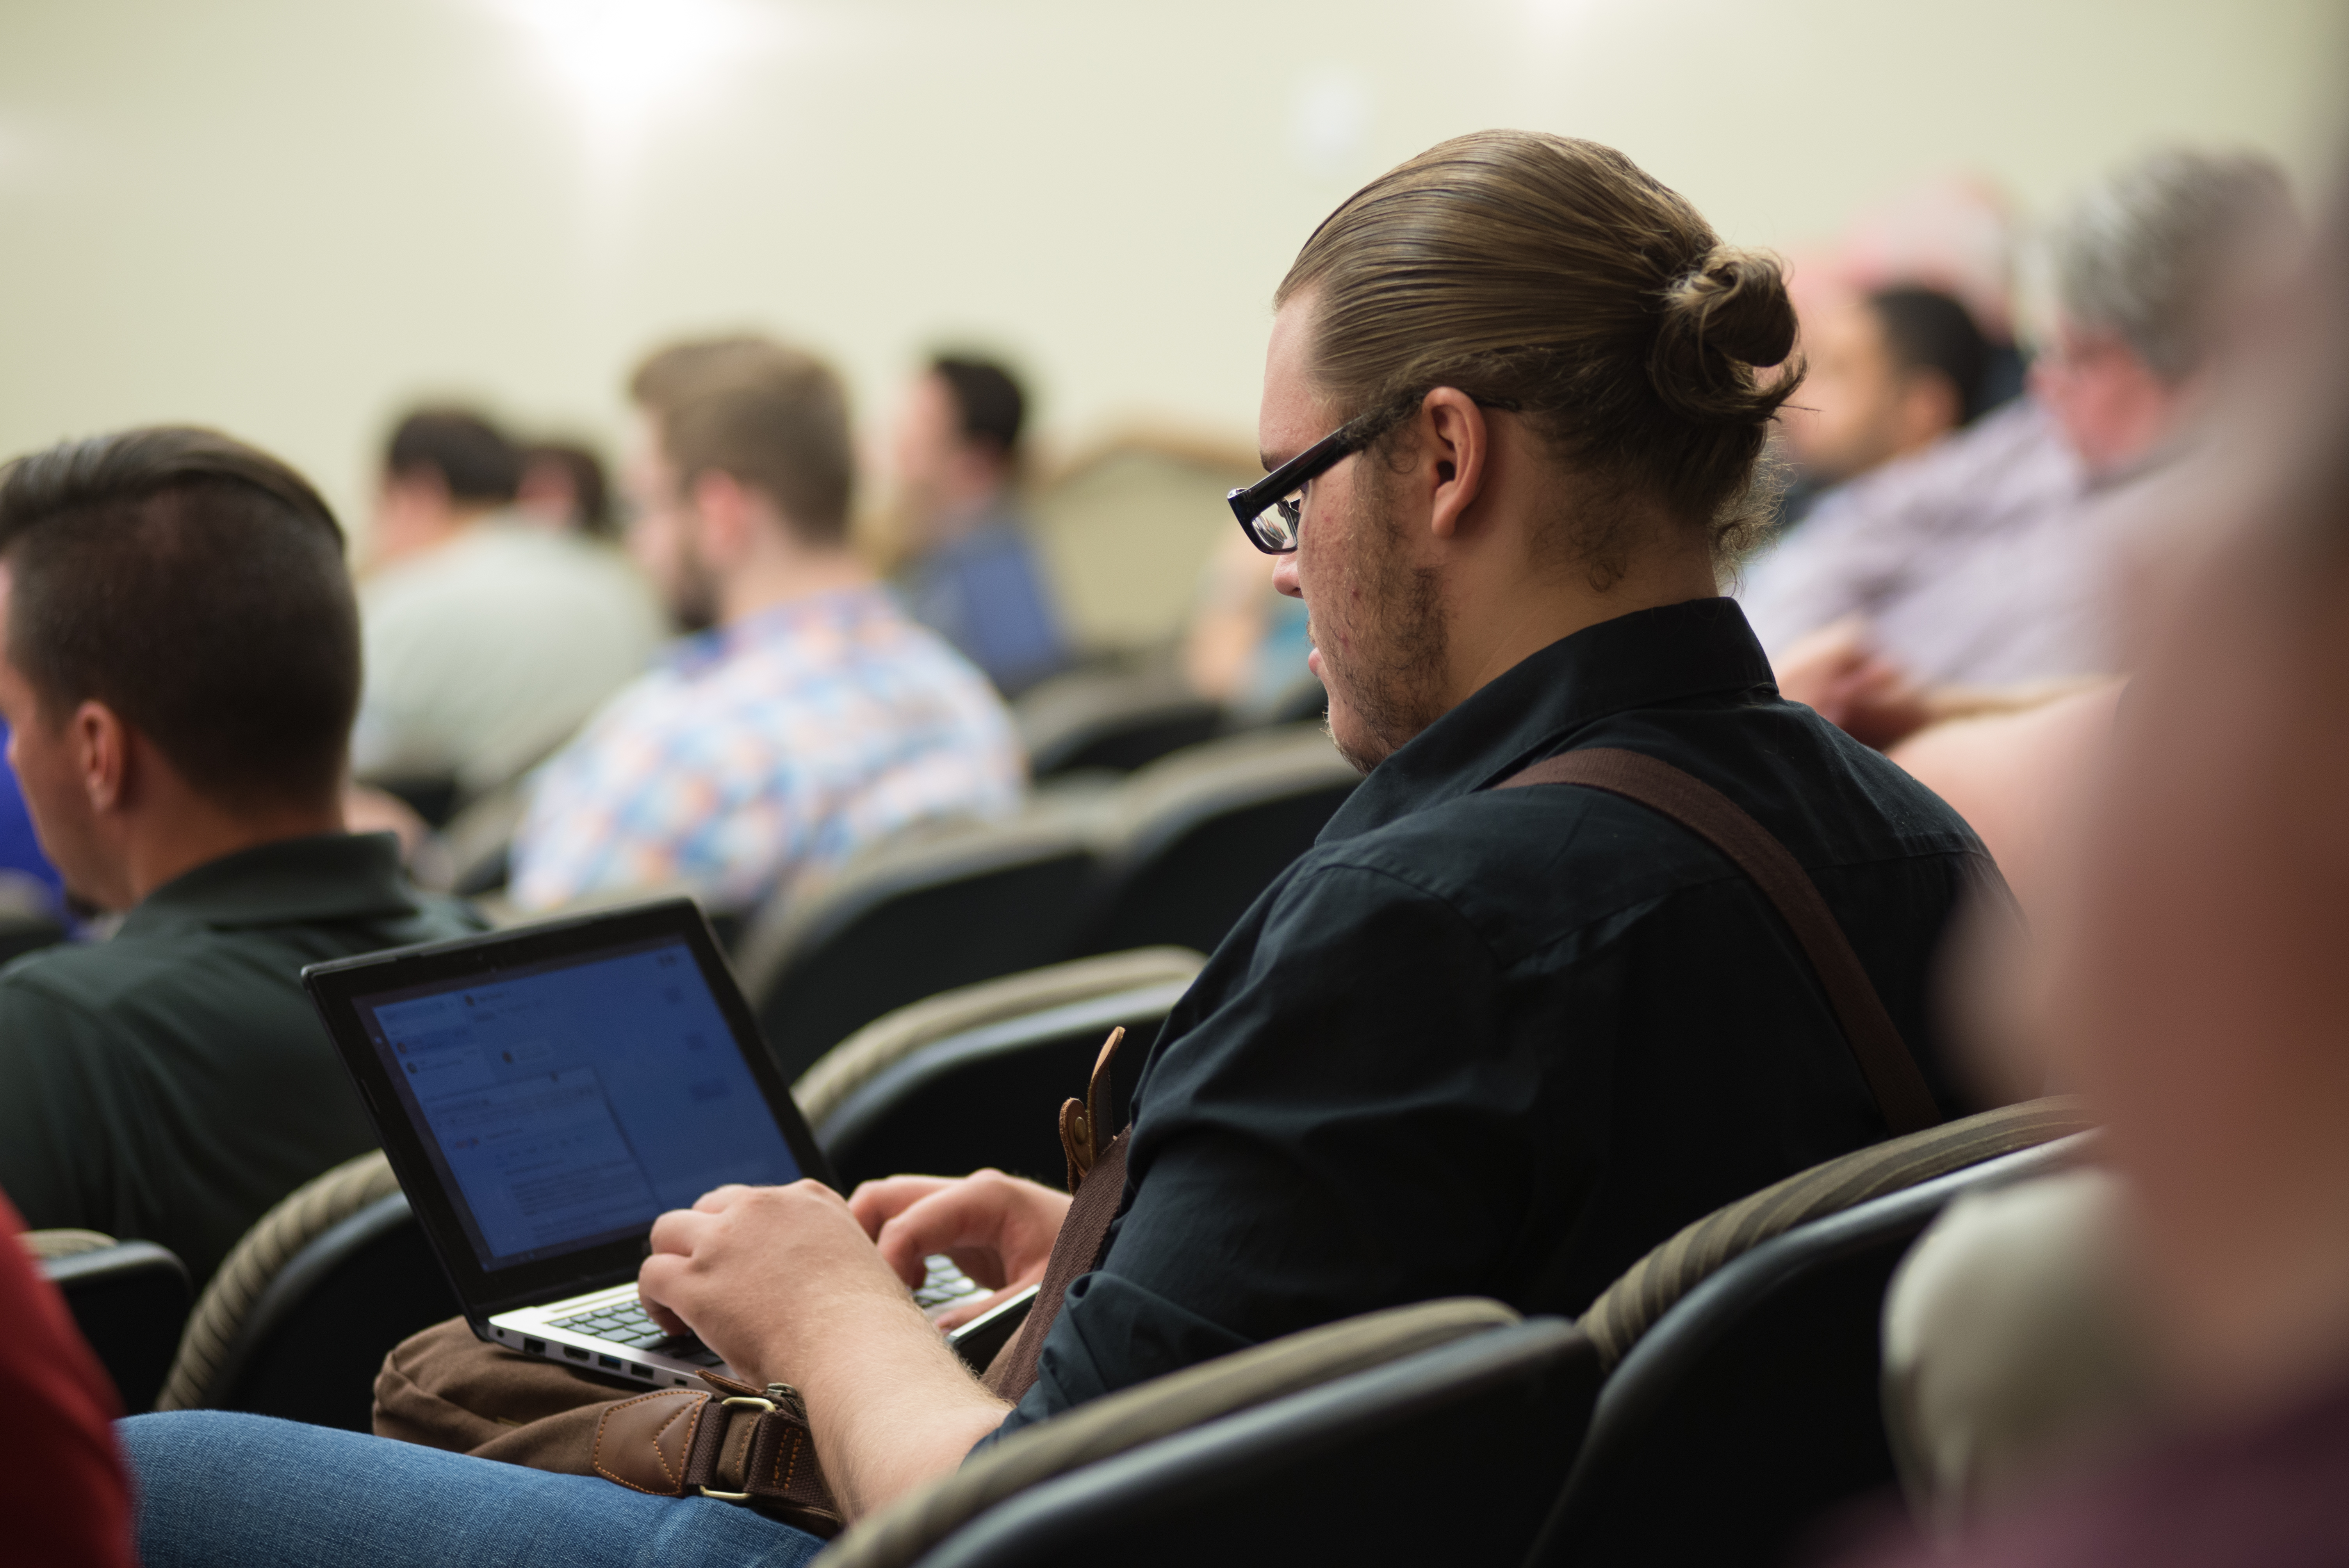 CIT 2017 attendee takes notes on laptop